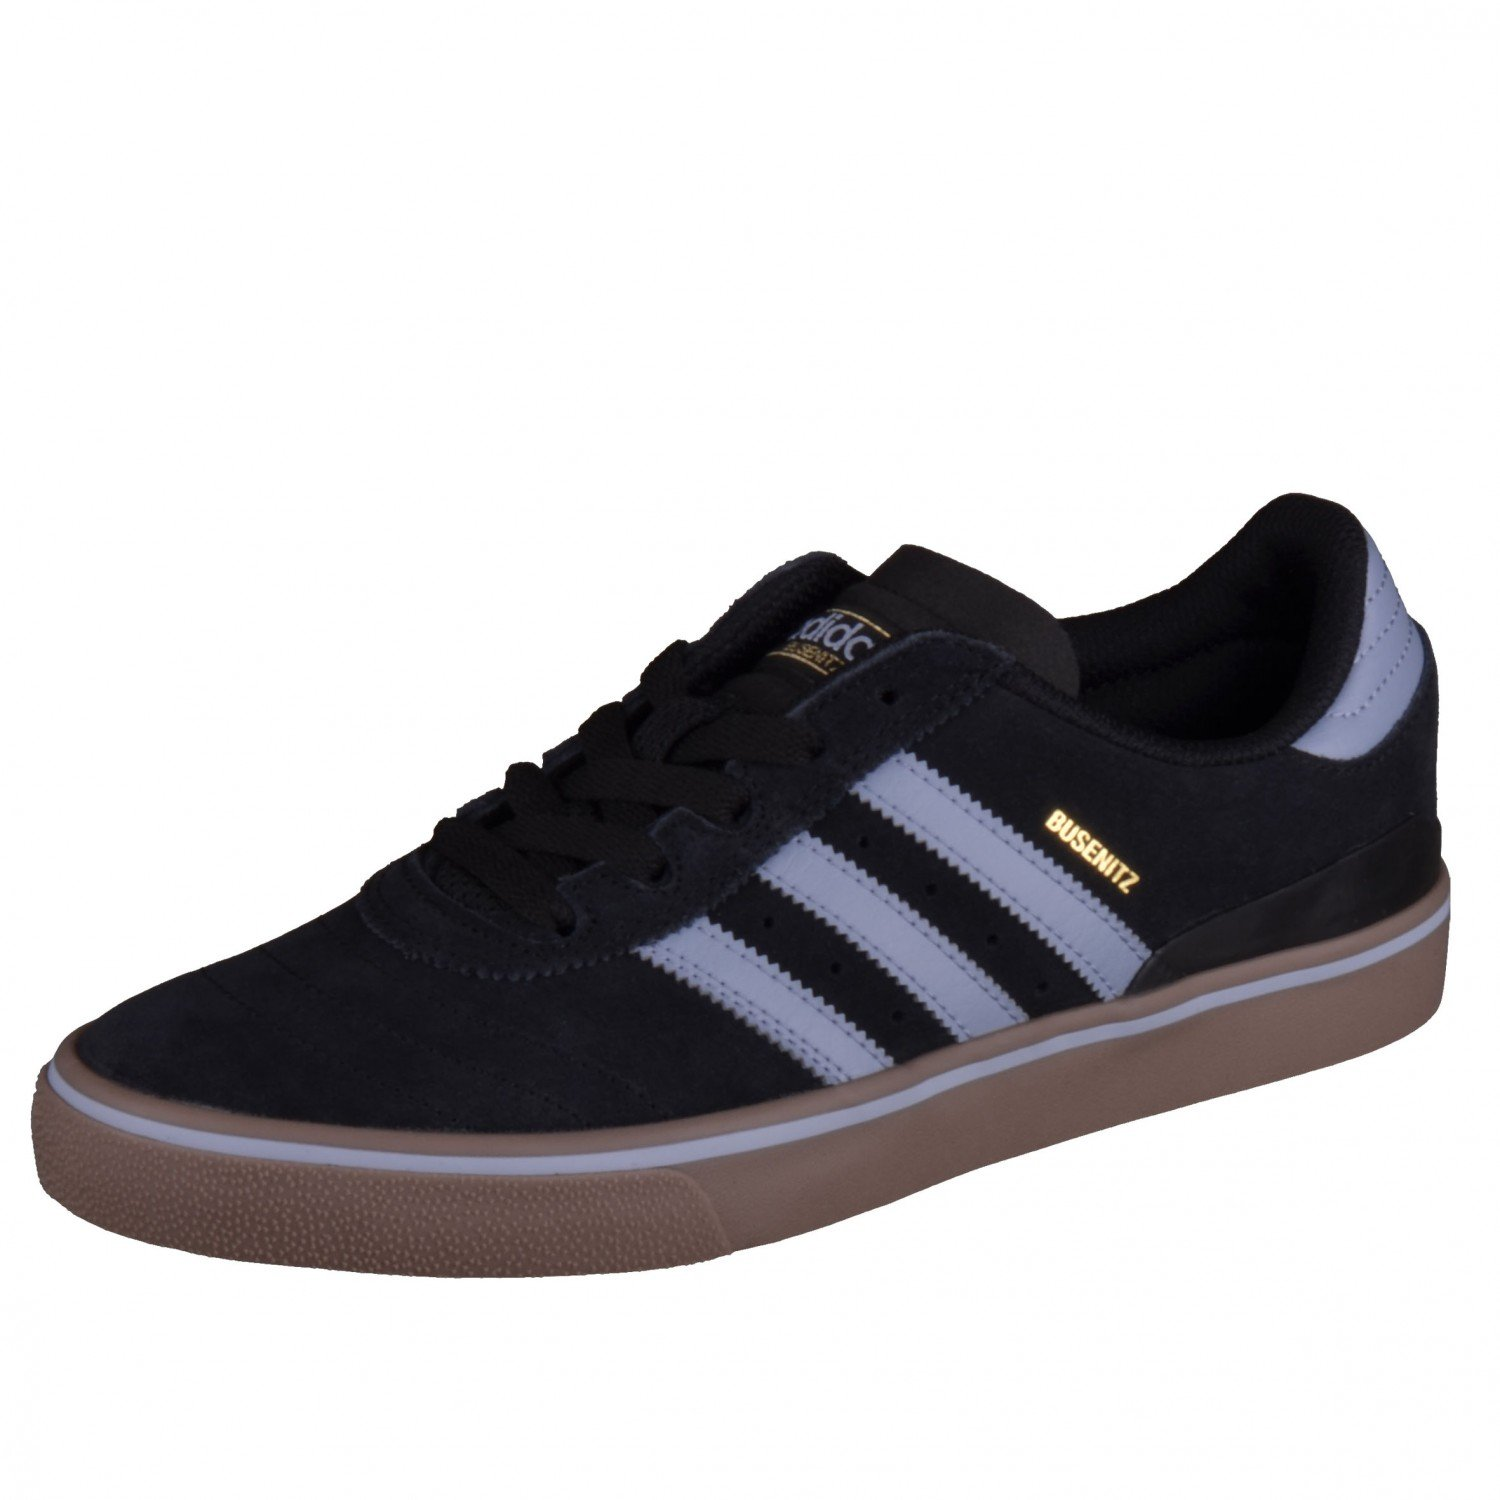 Adidas Skateboarding Busenitz ADV Core Black Tactile Blue Gum Skate Shoes